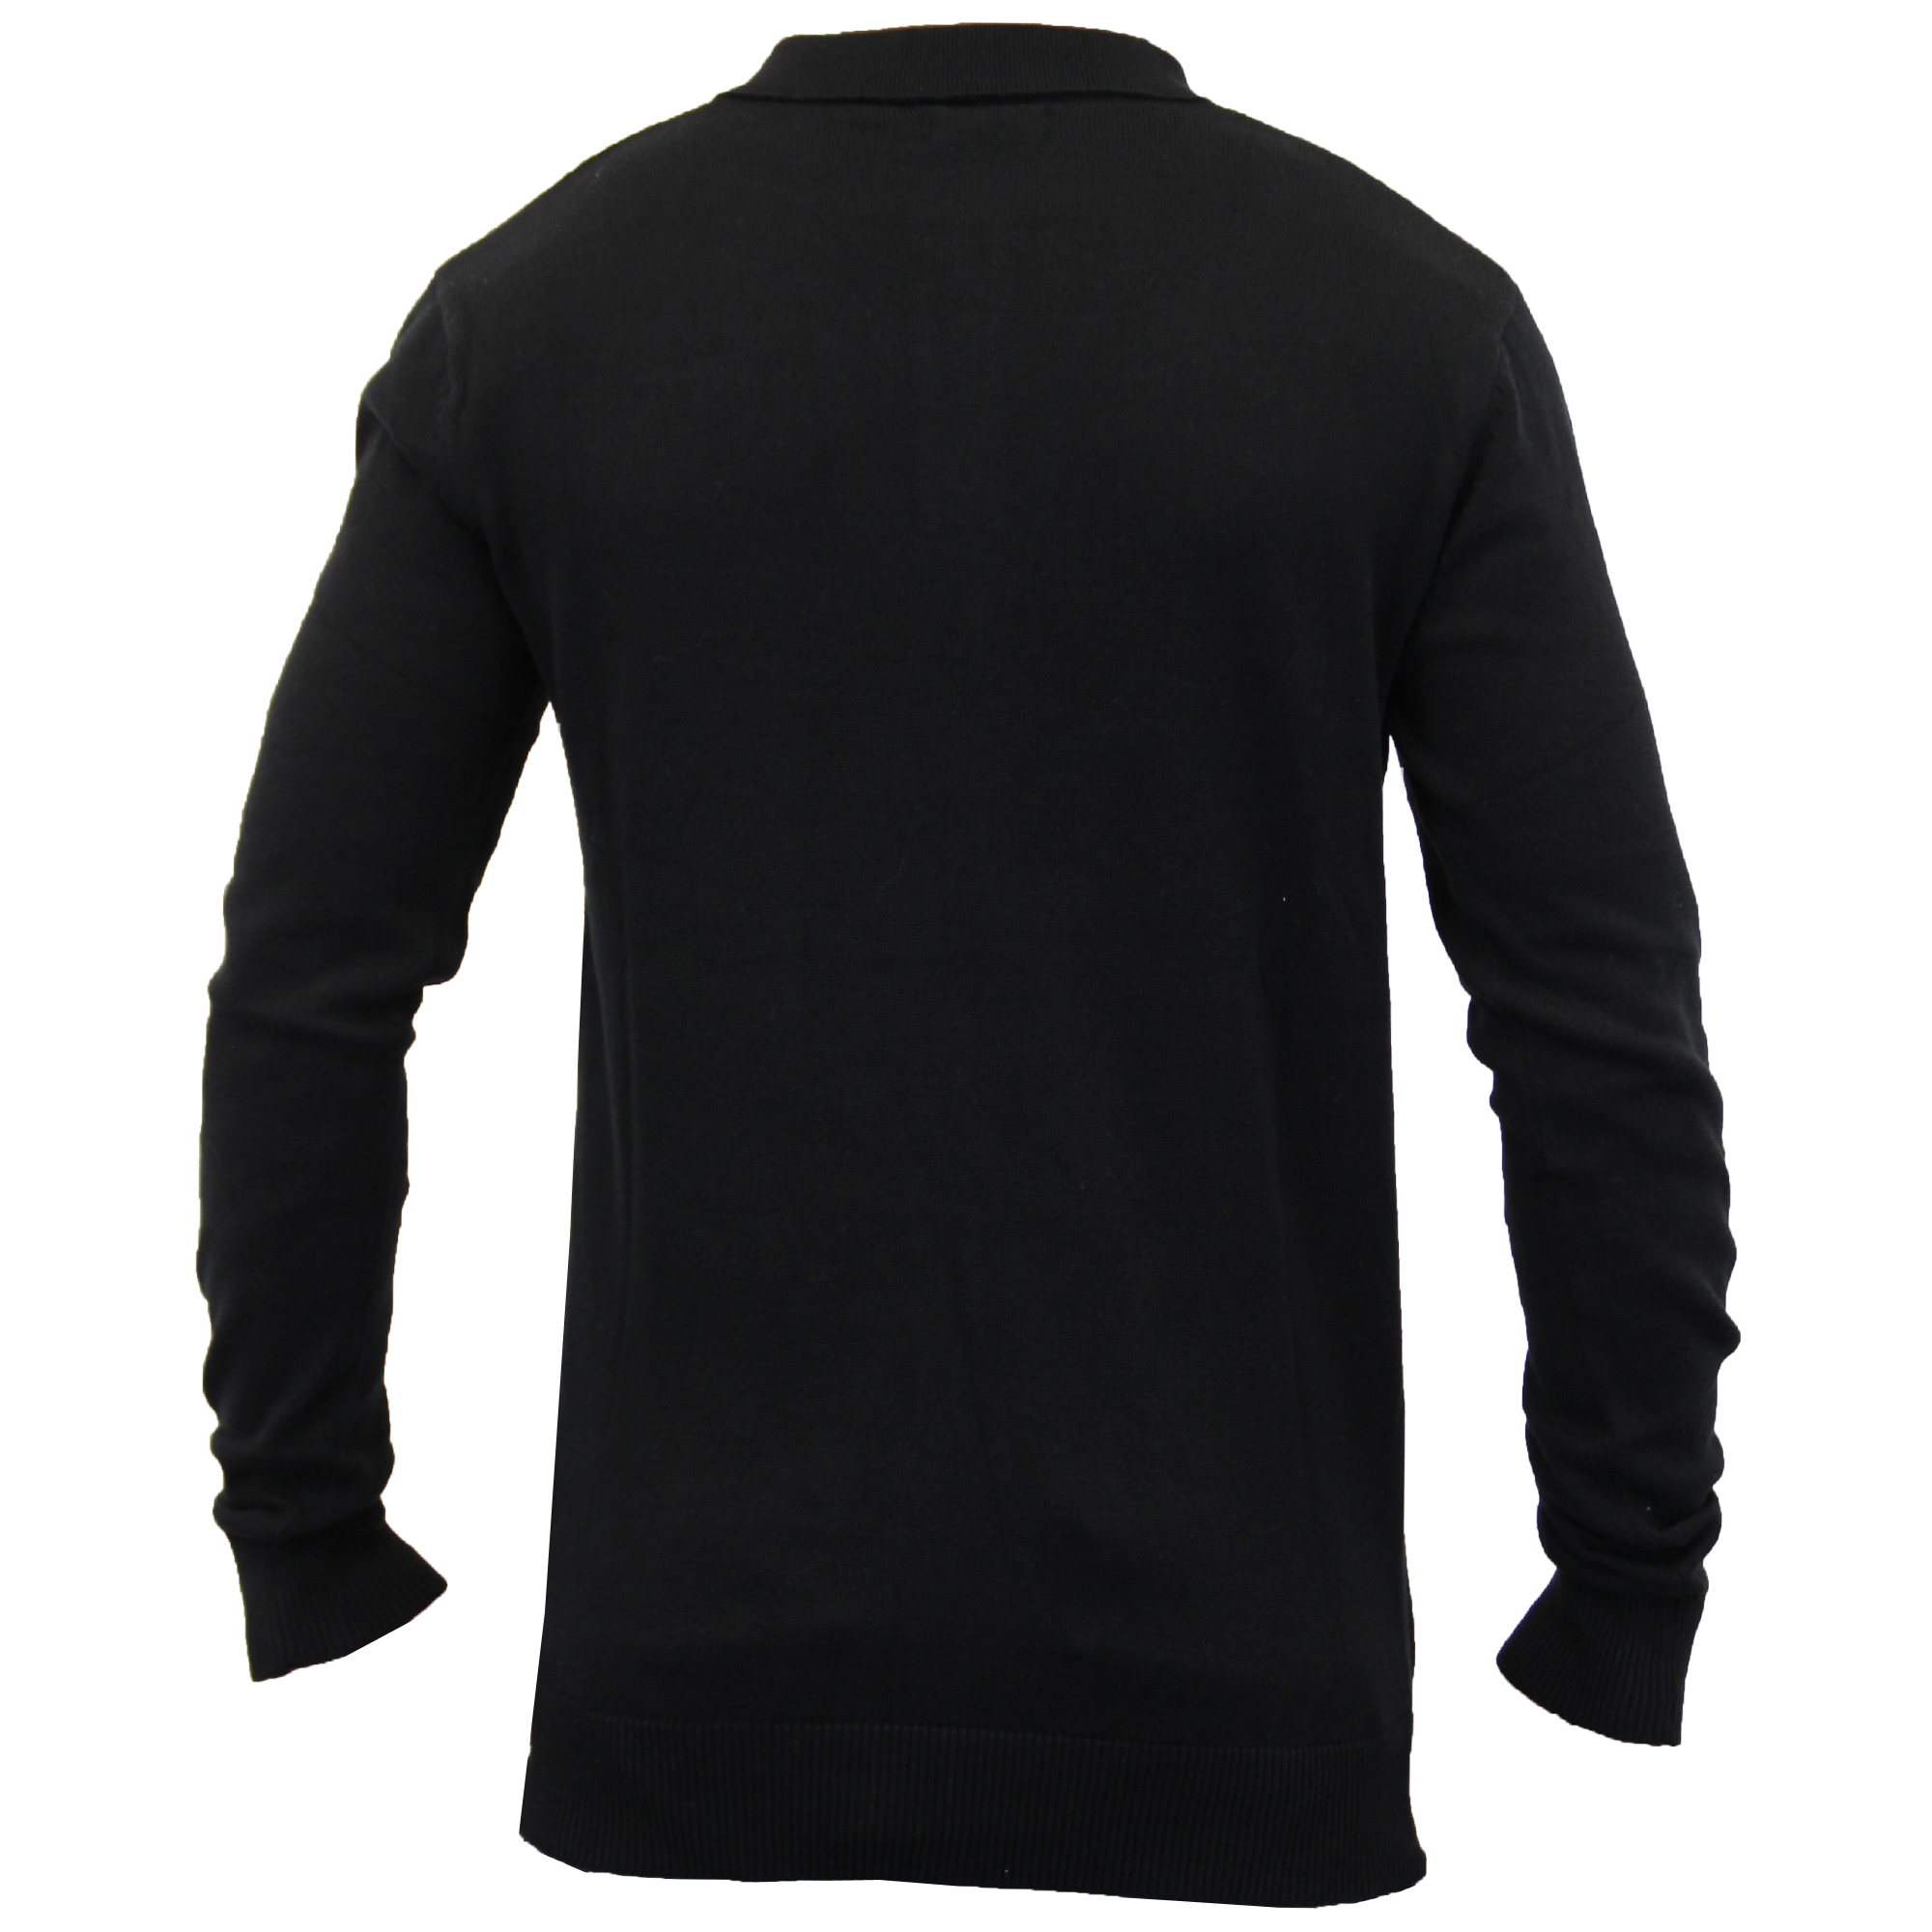 Mens-Knitted-Jumper-Brave-Soul-Polo-Top-Sweater-PLACKET-Pullover-Lightweight-New thumbnail 5